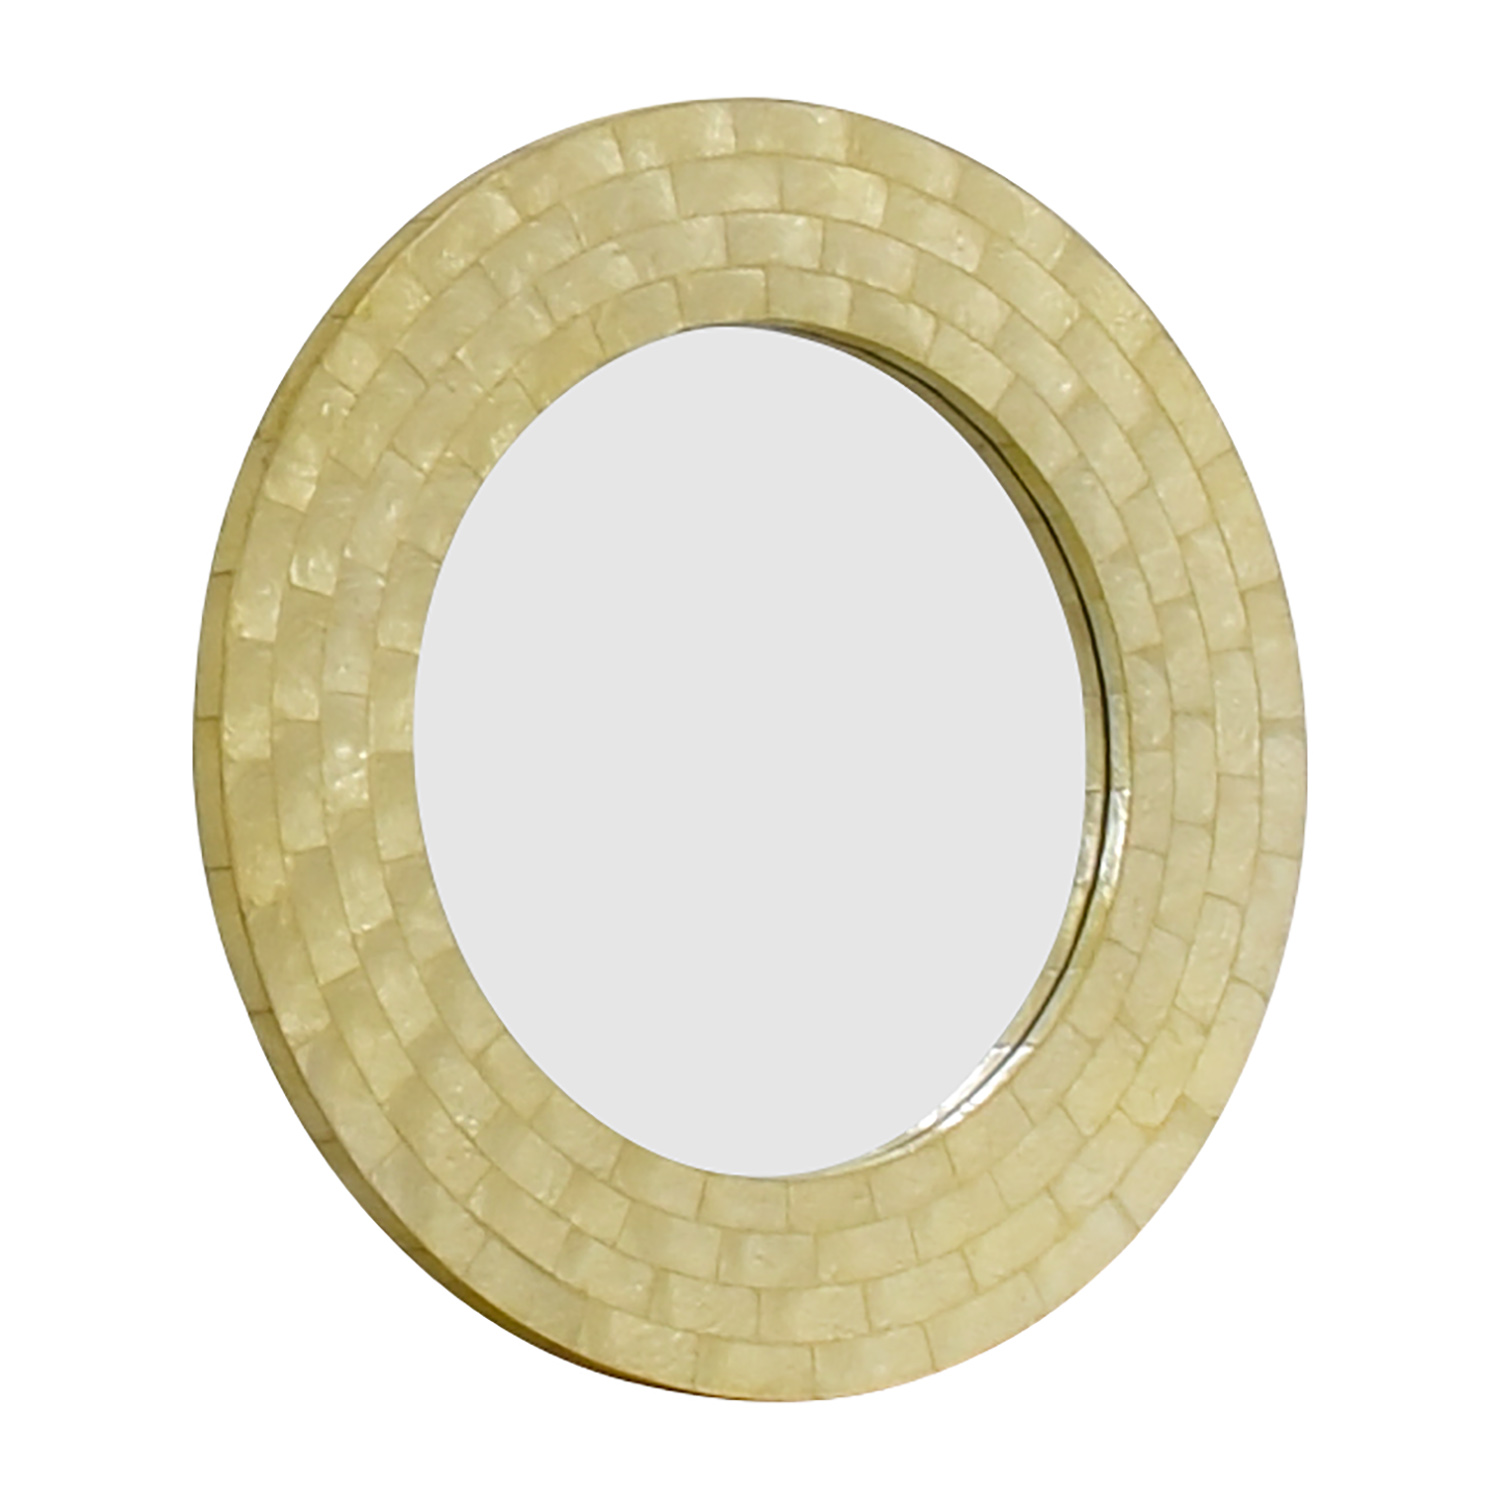 West Elm West Elm Mother of Pearl Round Mirror price